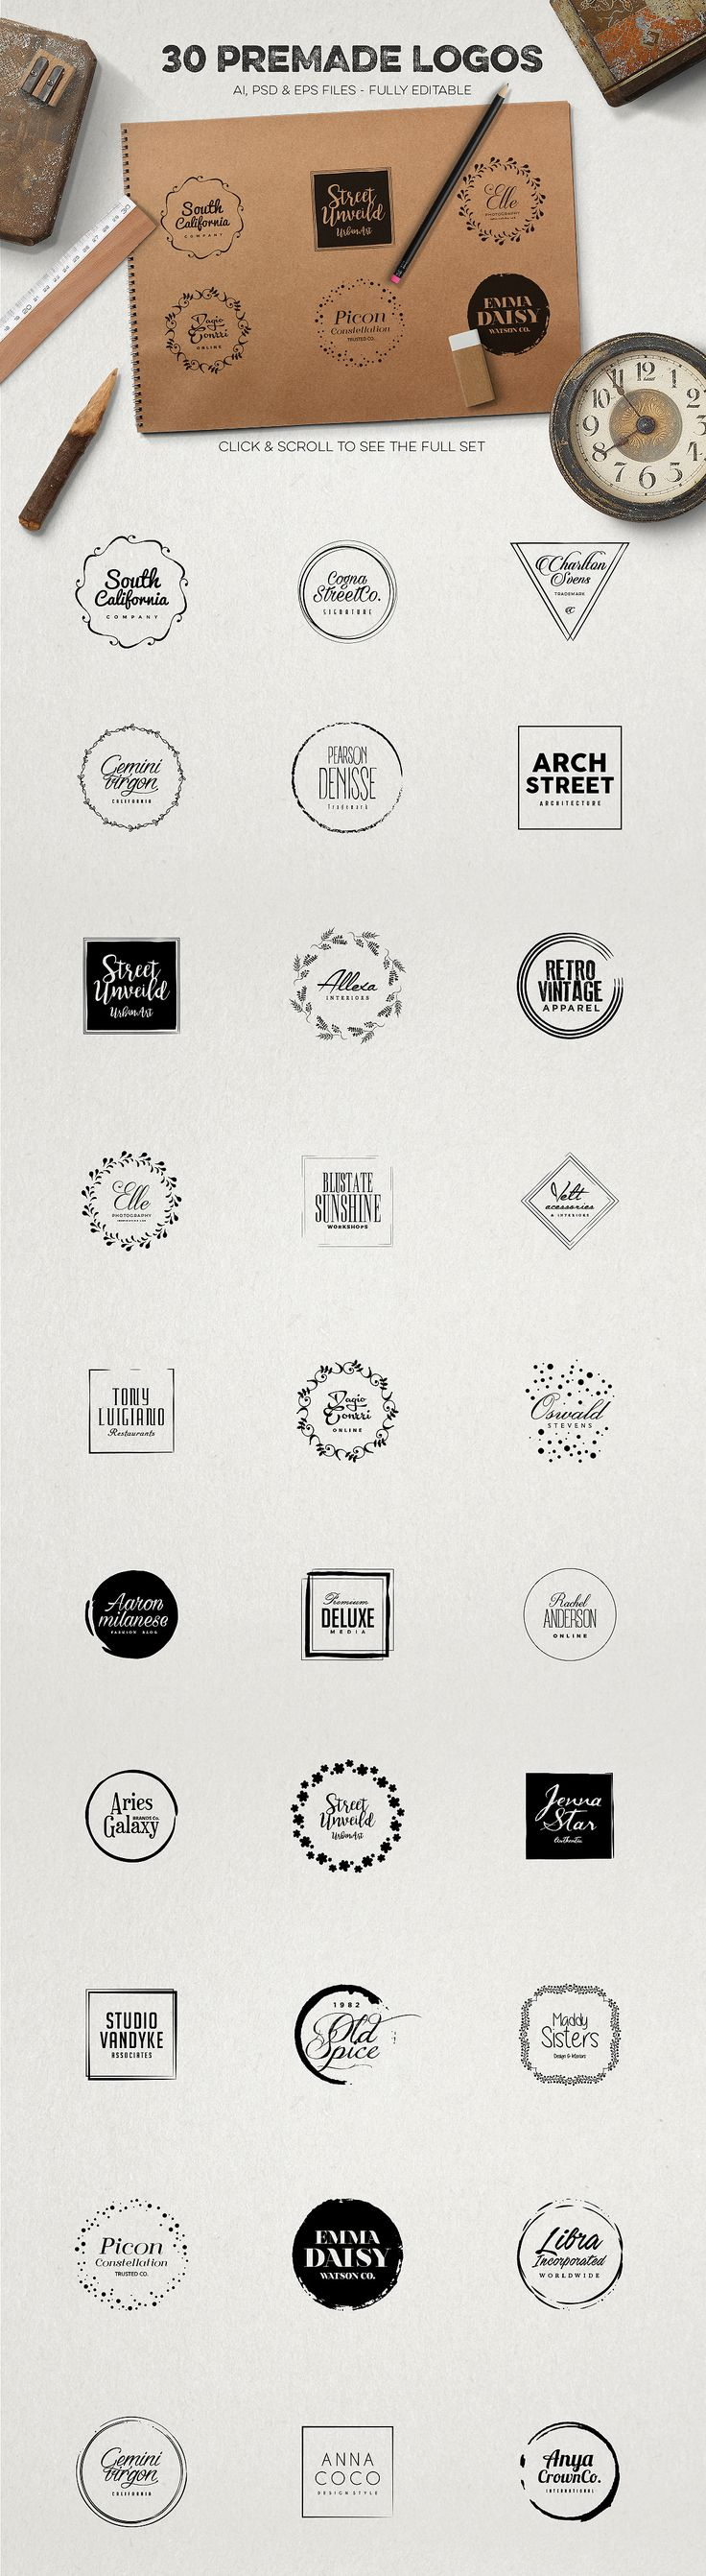 Logo Creation Kit Bundle http://jrstudioweb.com/diseno-grafico/diseno-de-logotipos/